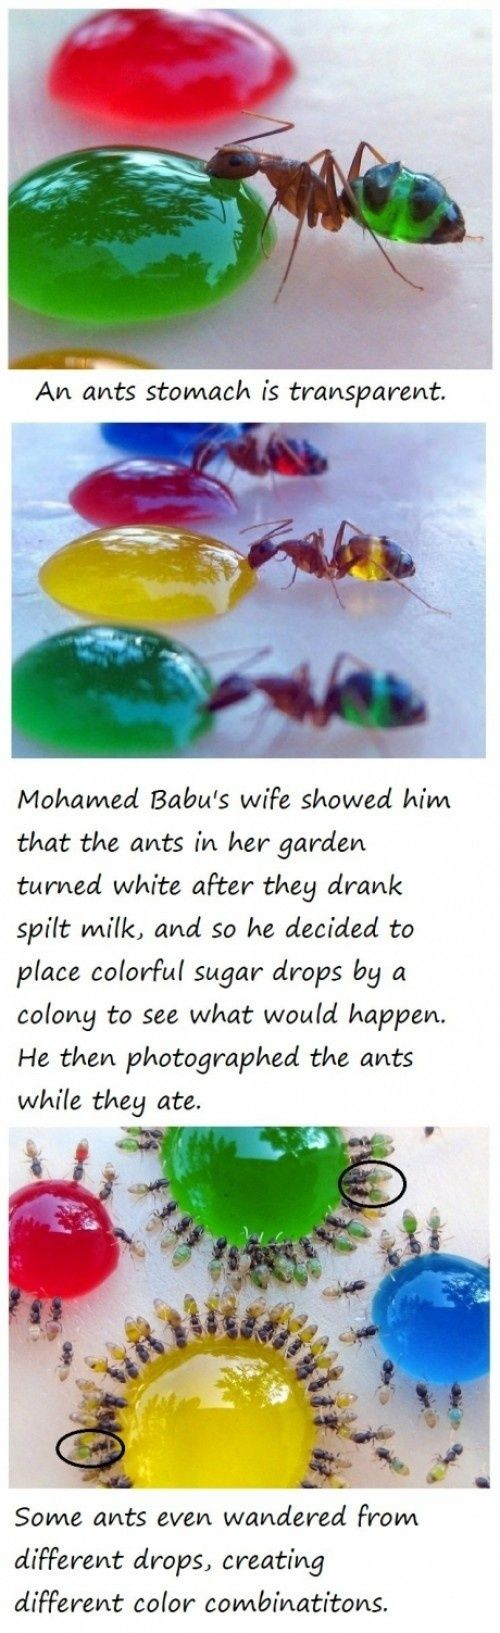 These Rainbow-Colored Transparent Ants Are What They Eat this is AAAWWWW sssoooommmeee!!